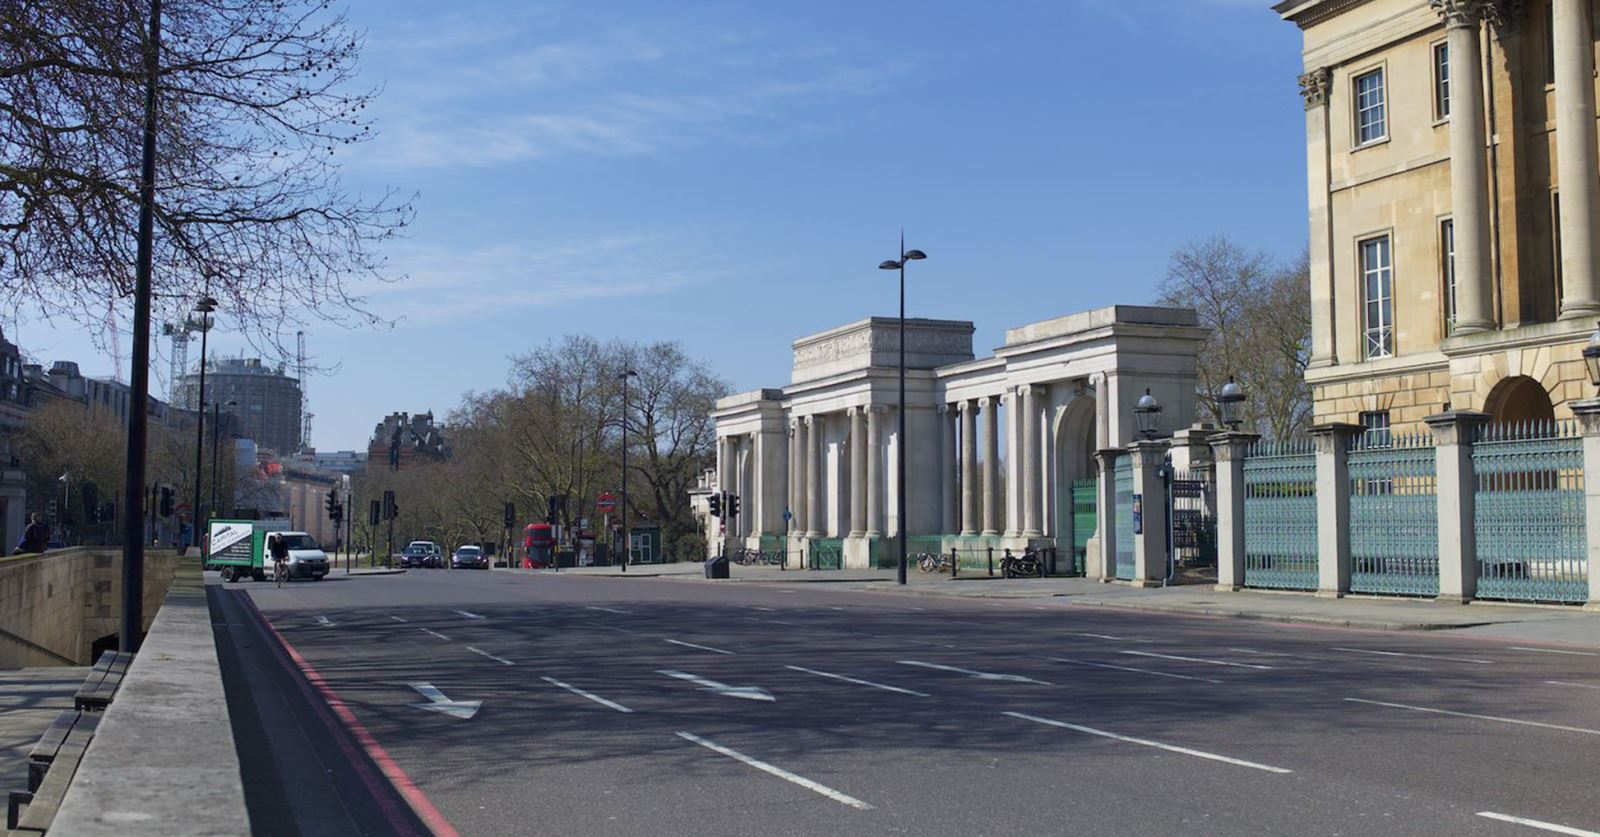 A nearly deserted Hyde Park Corner (taken by John Tarby en route to an essential medical appointment)